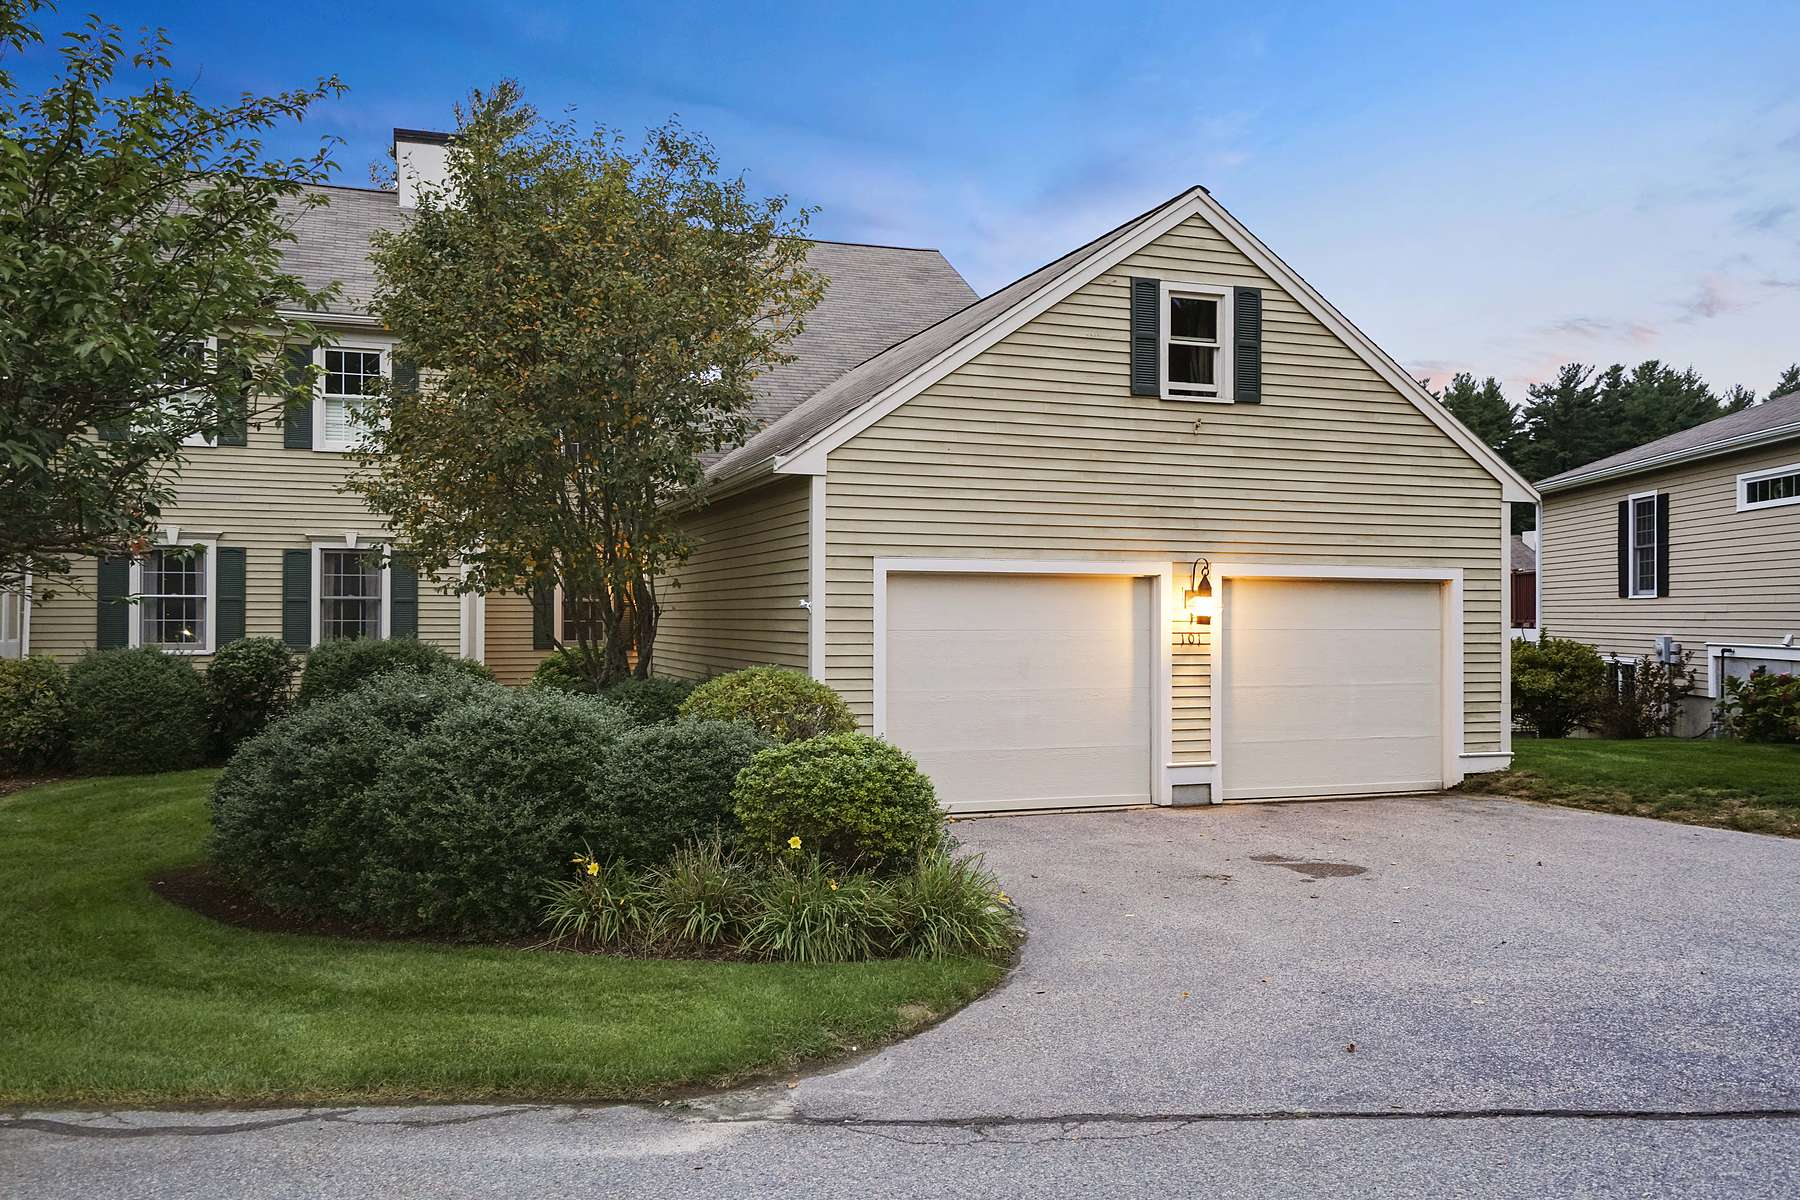 Townhouse for Sale at 101 Tussock Brook Road 101 Tussock Brook Road Duxbury, Massachusetts 02332 United States